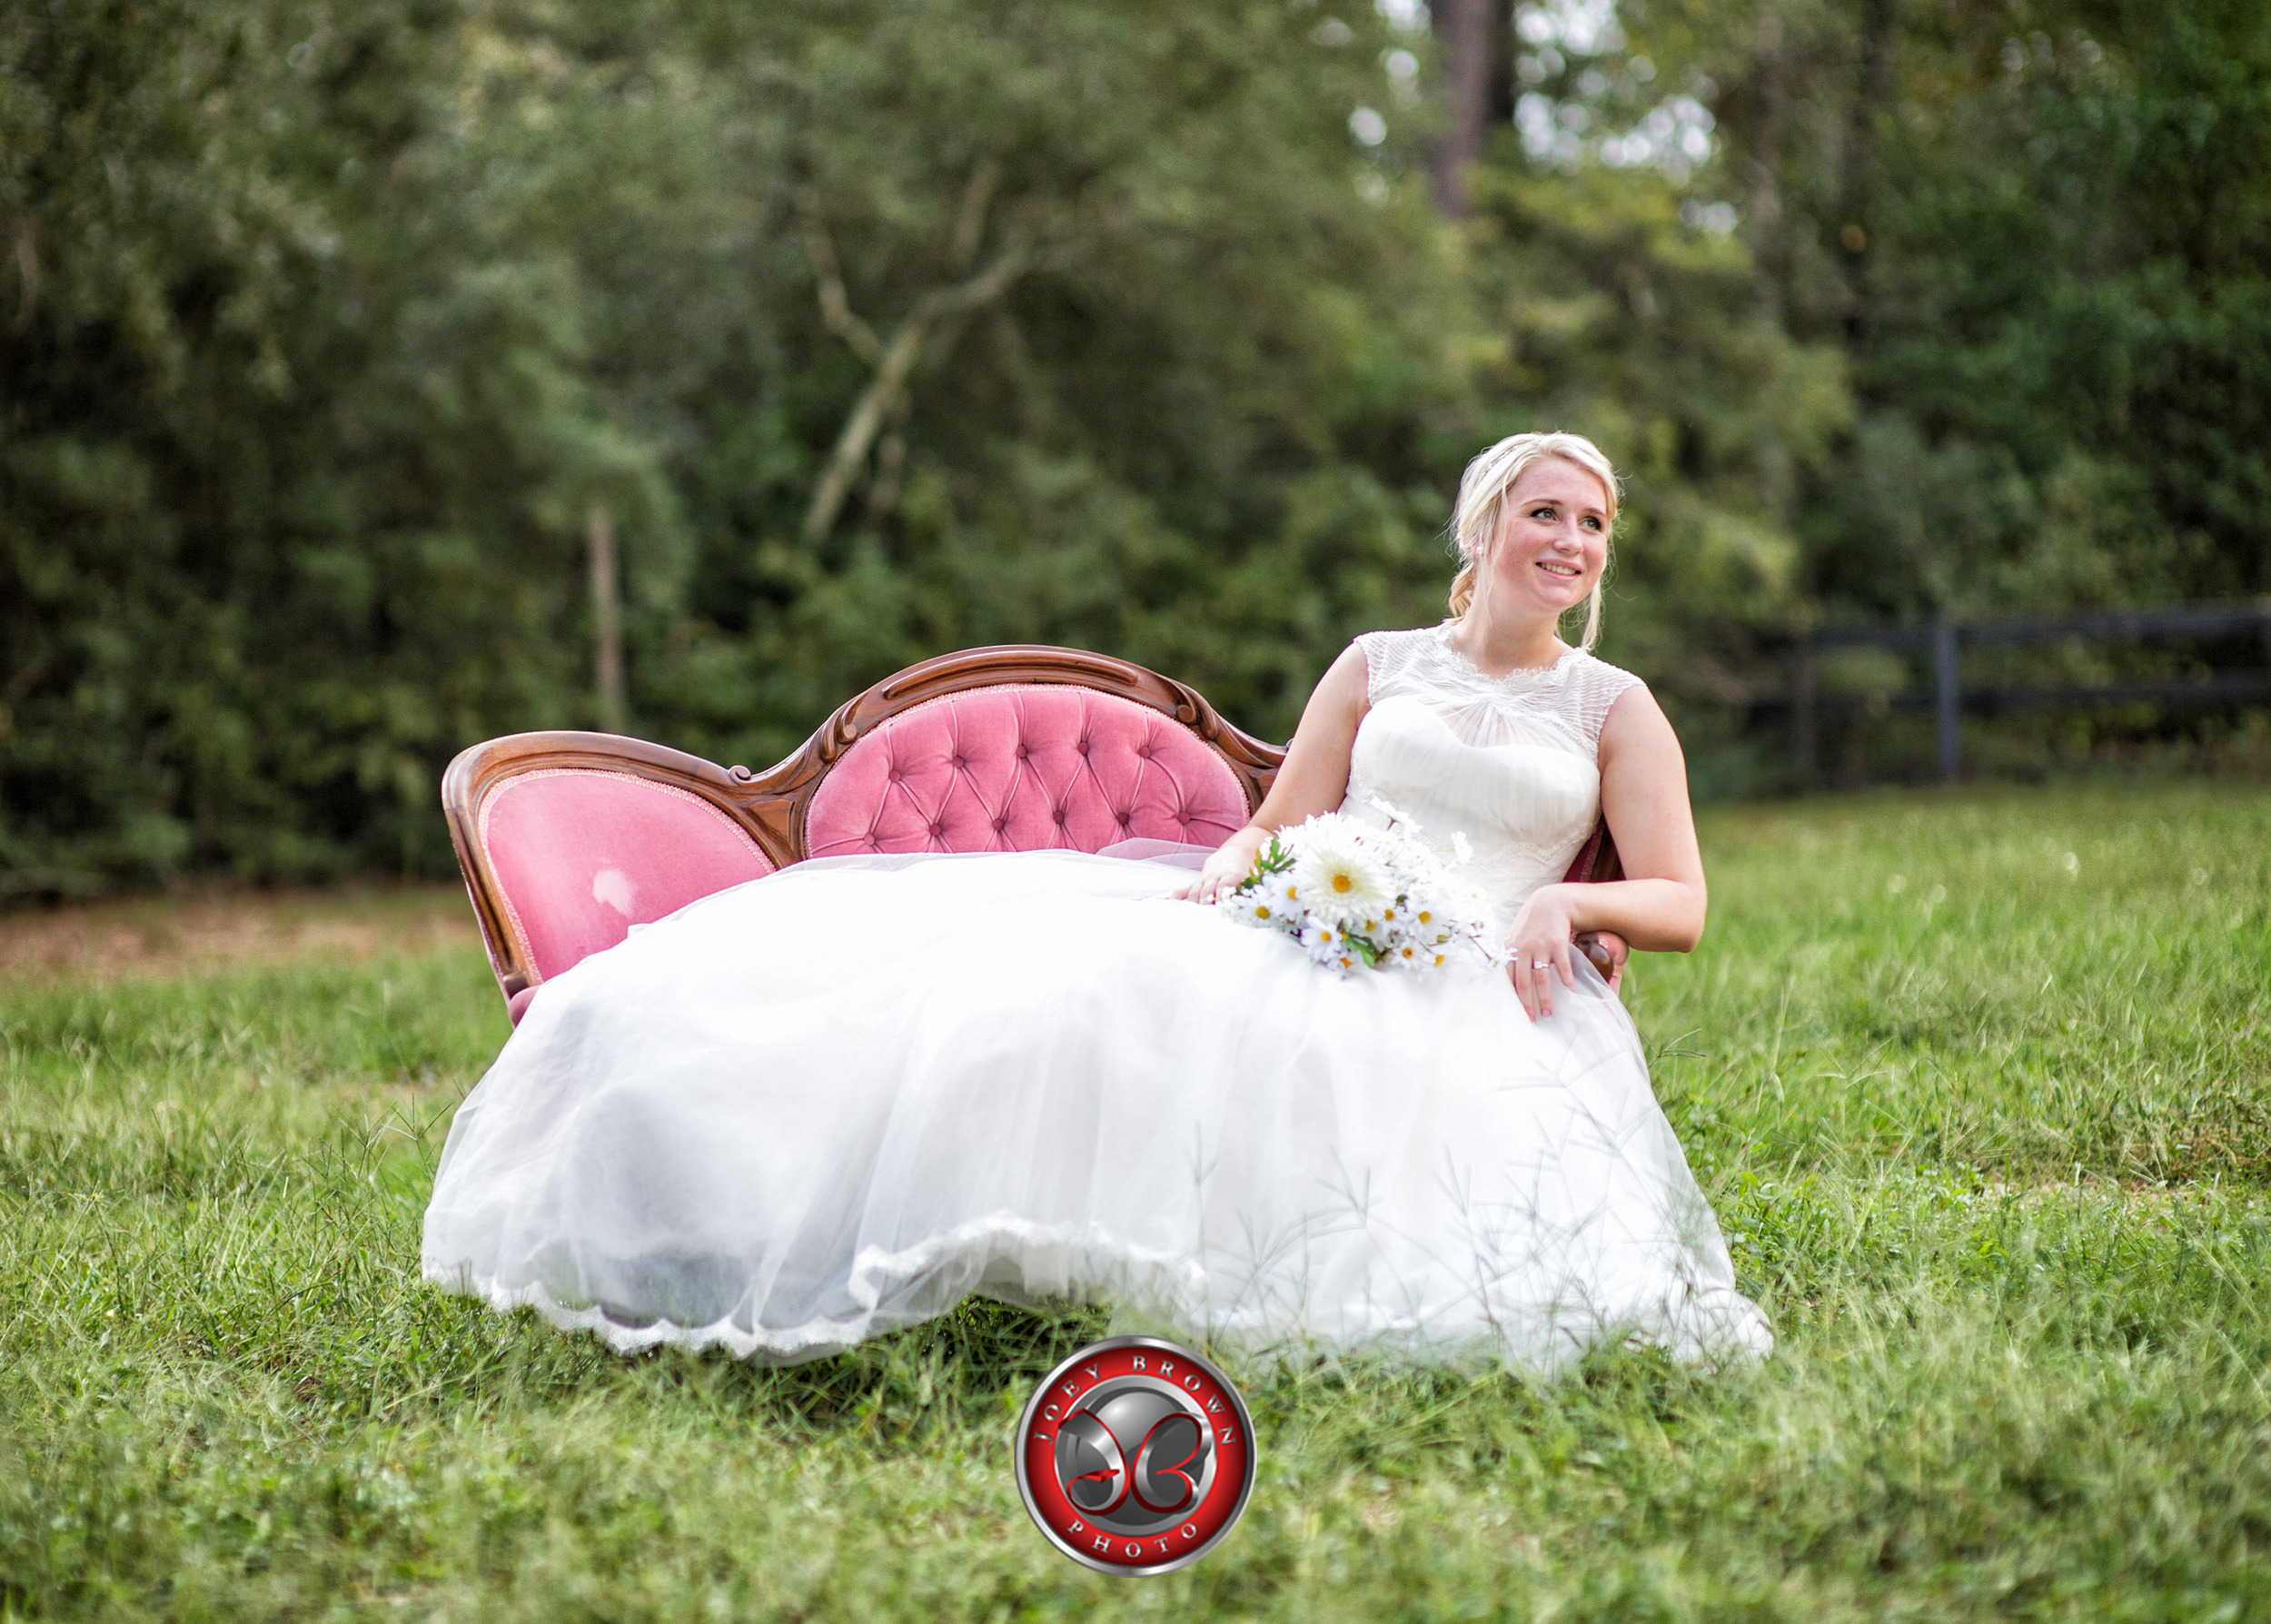 A bride poses on a rustic couch during her Bridal Shoot.